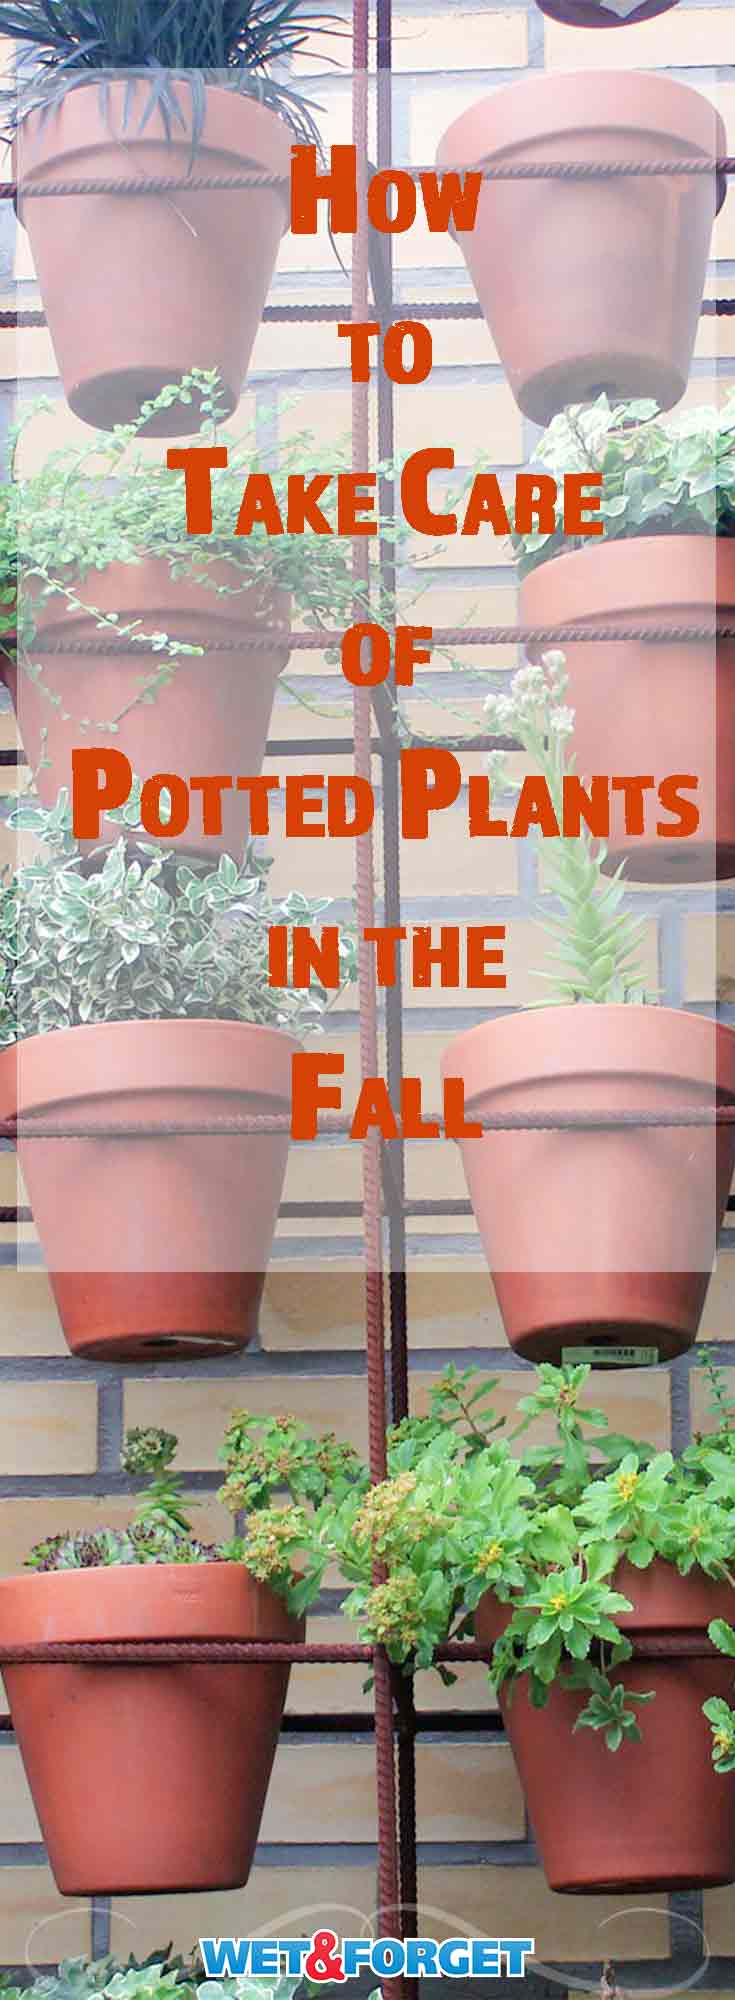 Fall is officially here as temperatures start to cool. Make sure you take care of your outdoor potted plants with our guidelines this fall!